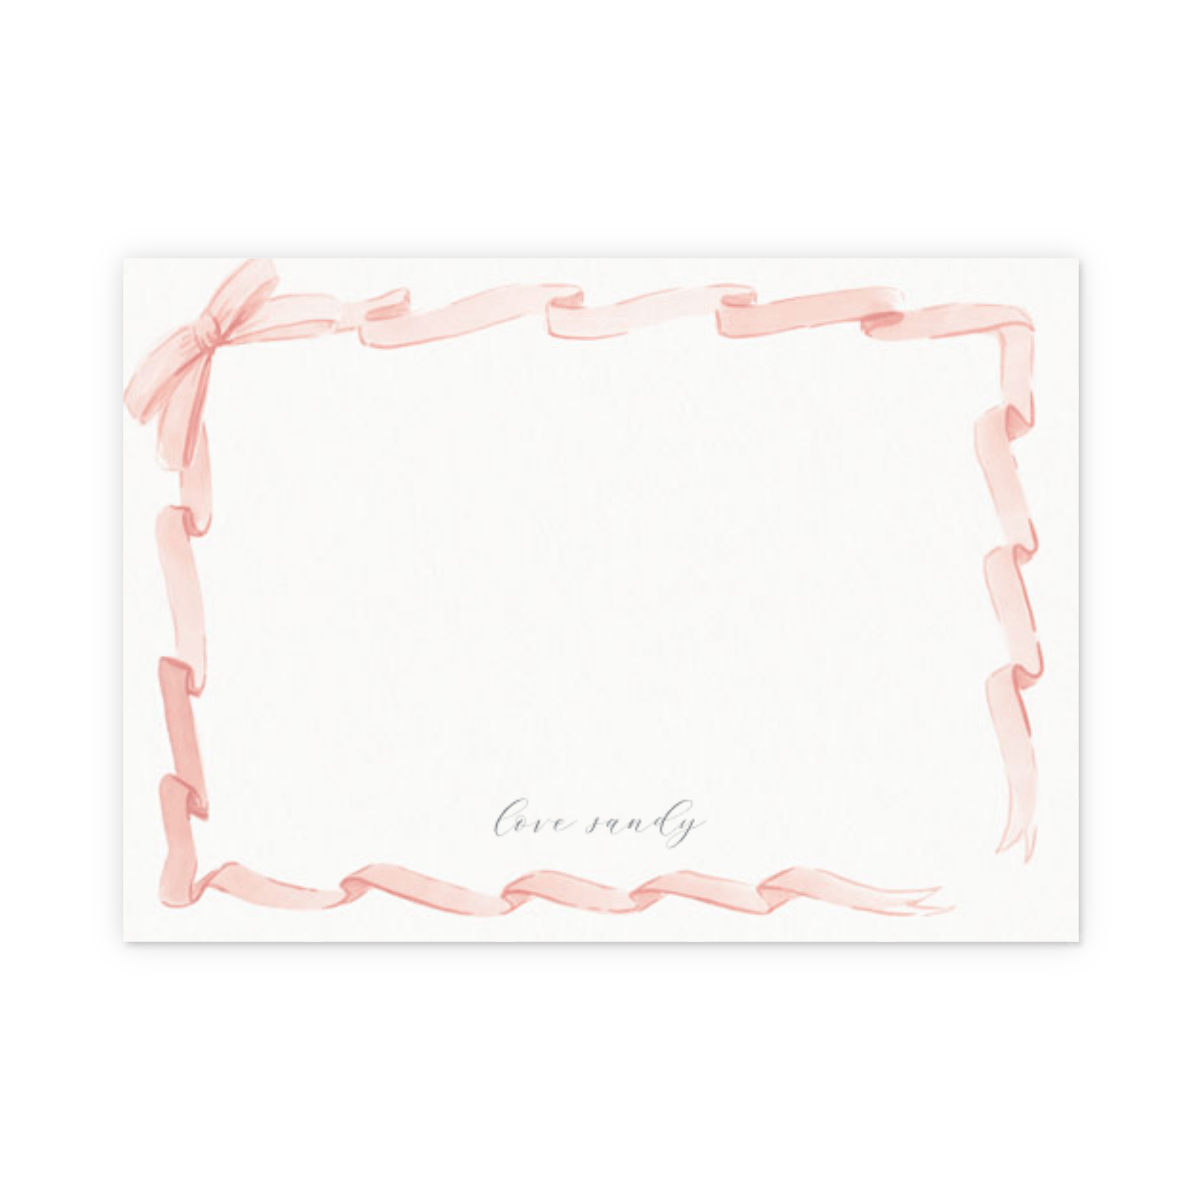 Https%3a%2f%2fwww.papier.com%2fproduct image%2f99402%2f10%2fblush ribbon 25351 front 1577116208.png?ixlib=rb 1.1